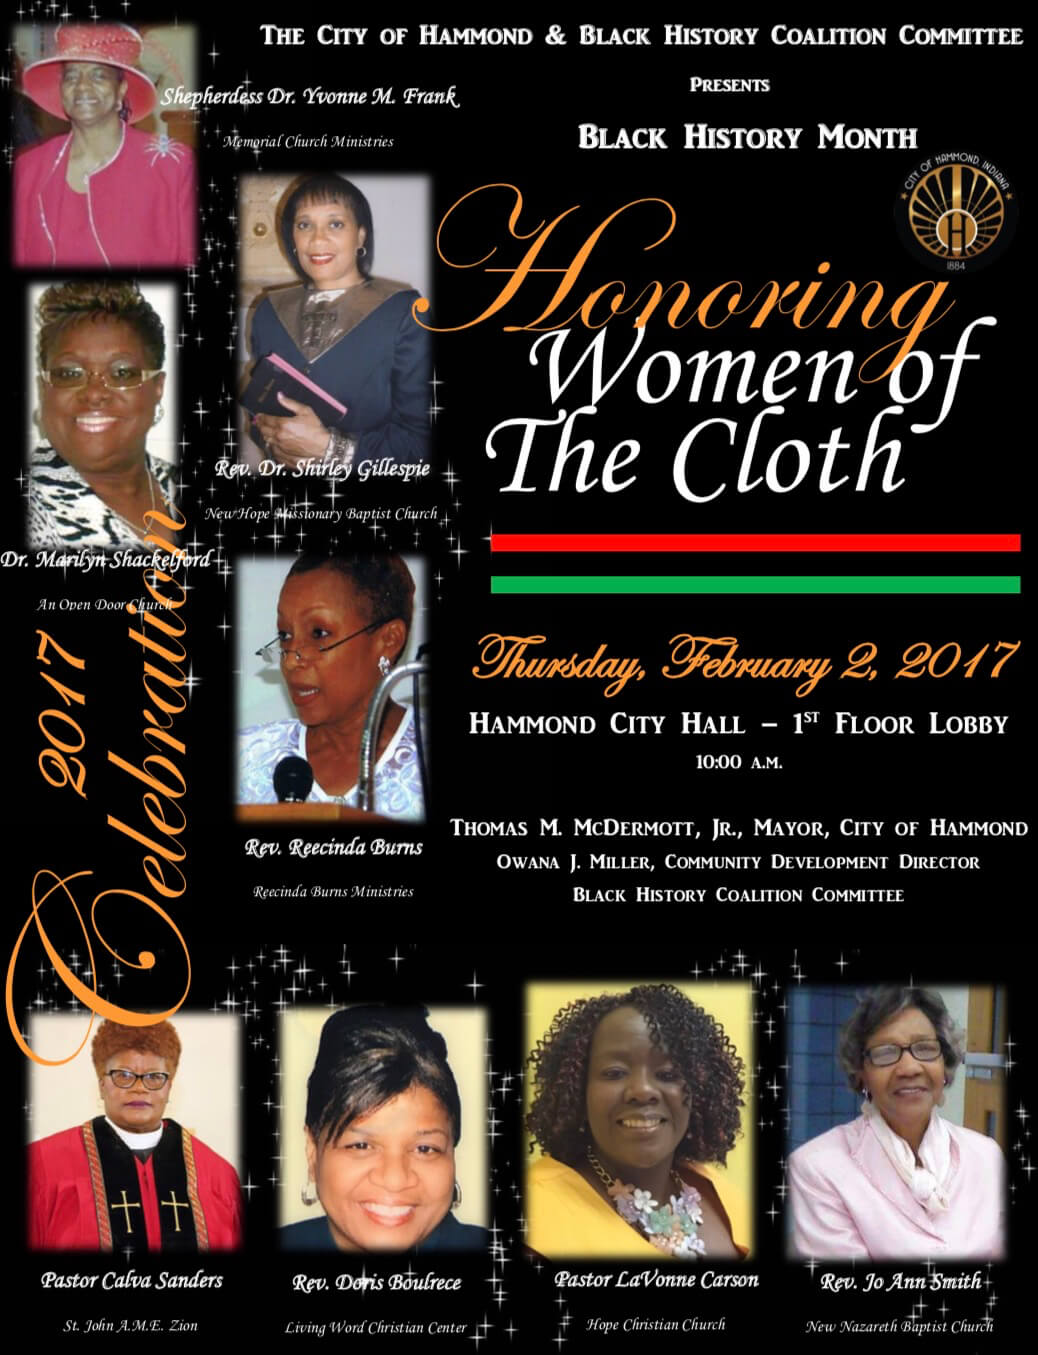 "Mayor Thomas M. McDermott, Jr., the Hammond Human Relations Commission and Department of Community Development will host a Black History Month Celebration on Thursday, February 2, 2017 at Hammond City Hall, 1st floor lobby. The festivities will begin at 10:00 a.m.The theme for this year's event is ""Women of the Cloth"" Mayor McDermott will present a proclamation honoring the longest married African American couples in the City of Hammond."